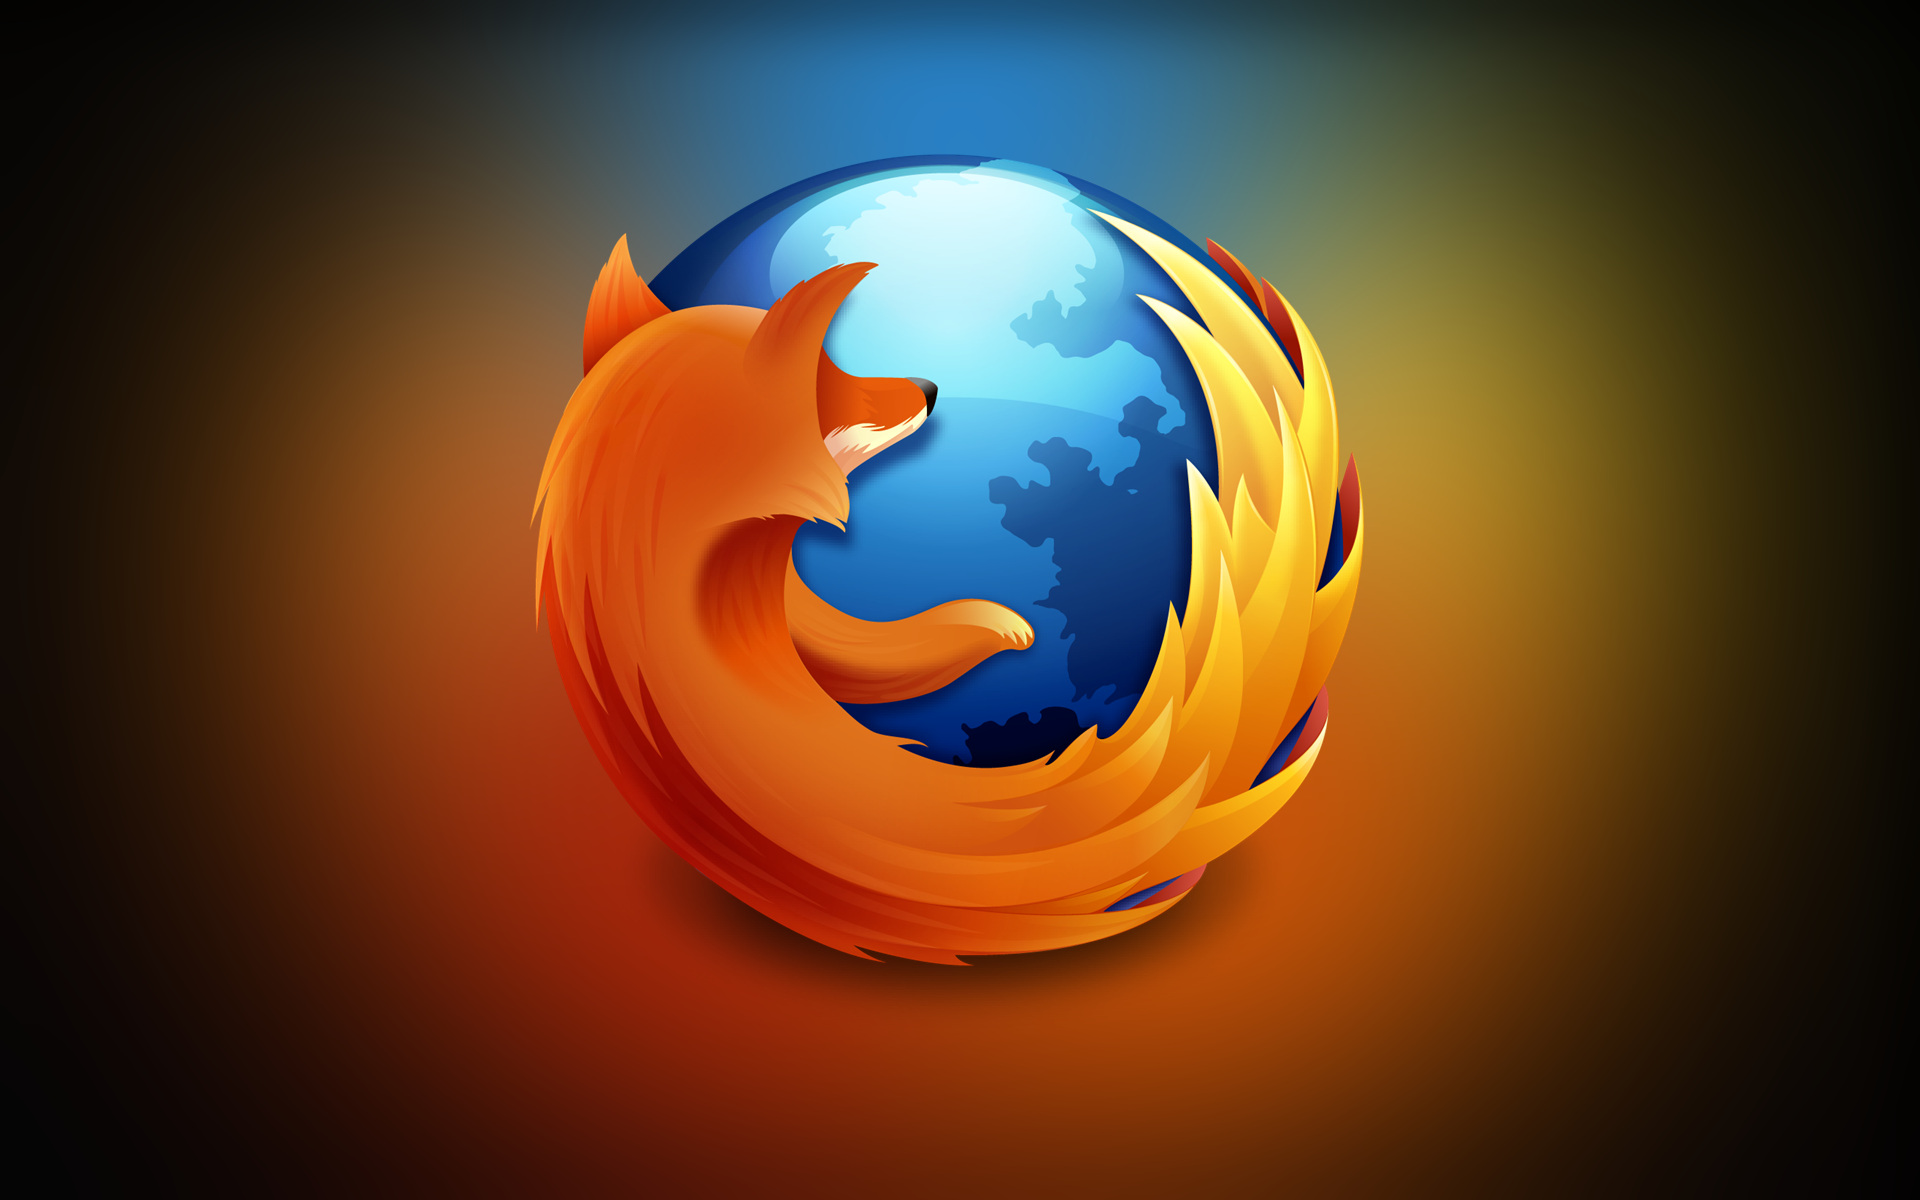 HQ Firefox Wallpapers | File 1081.64Kb